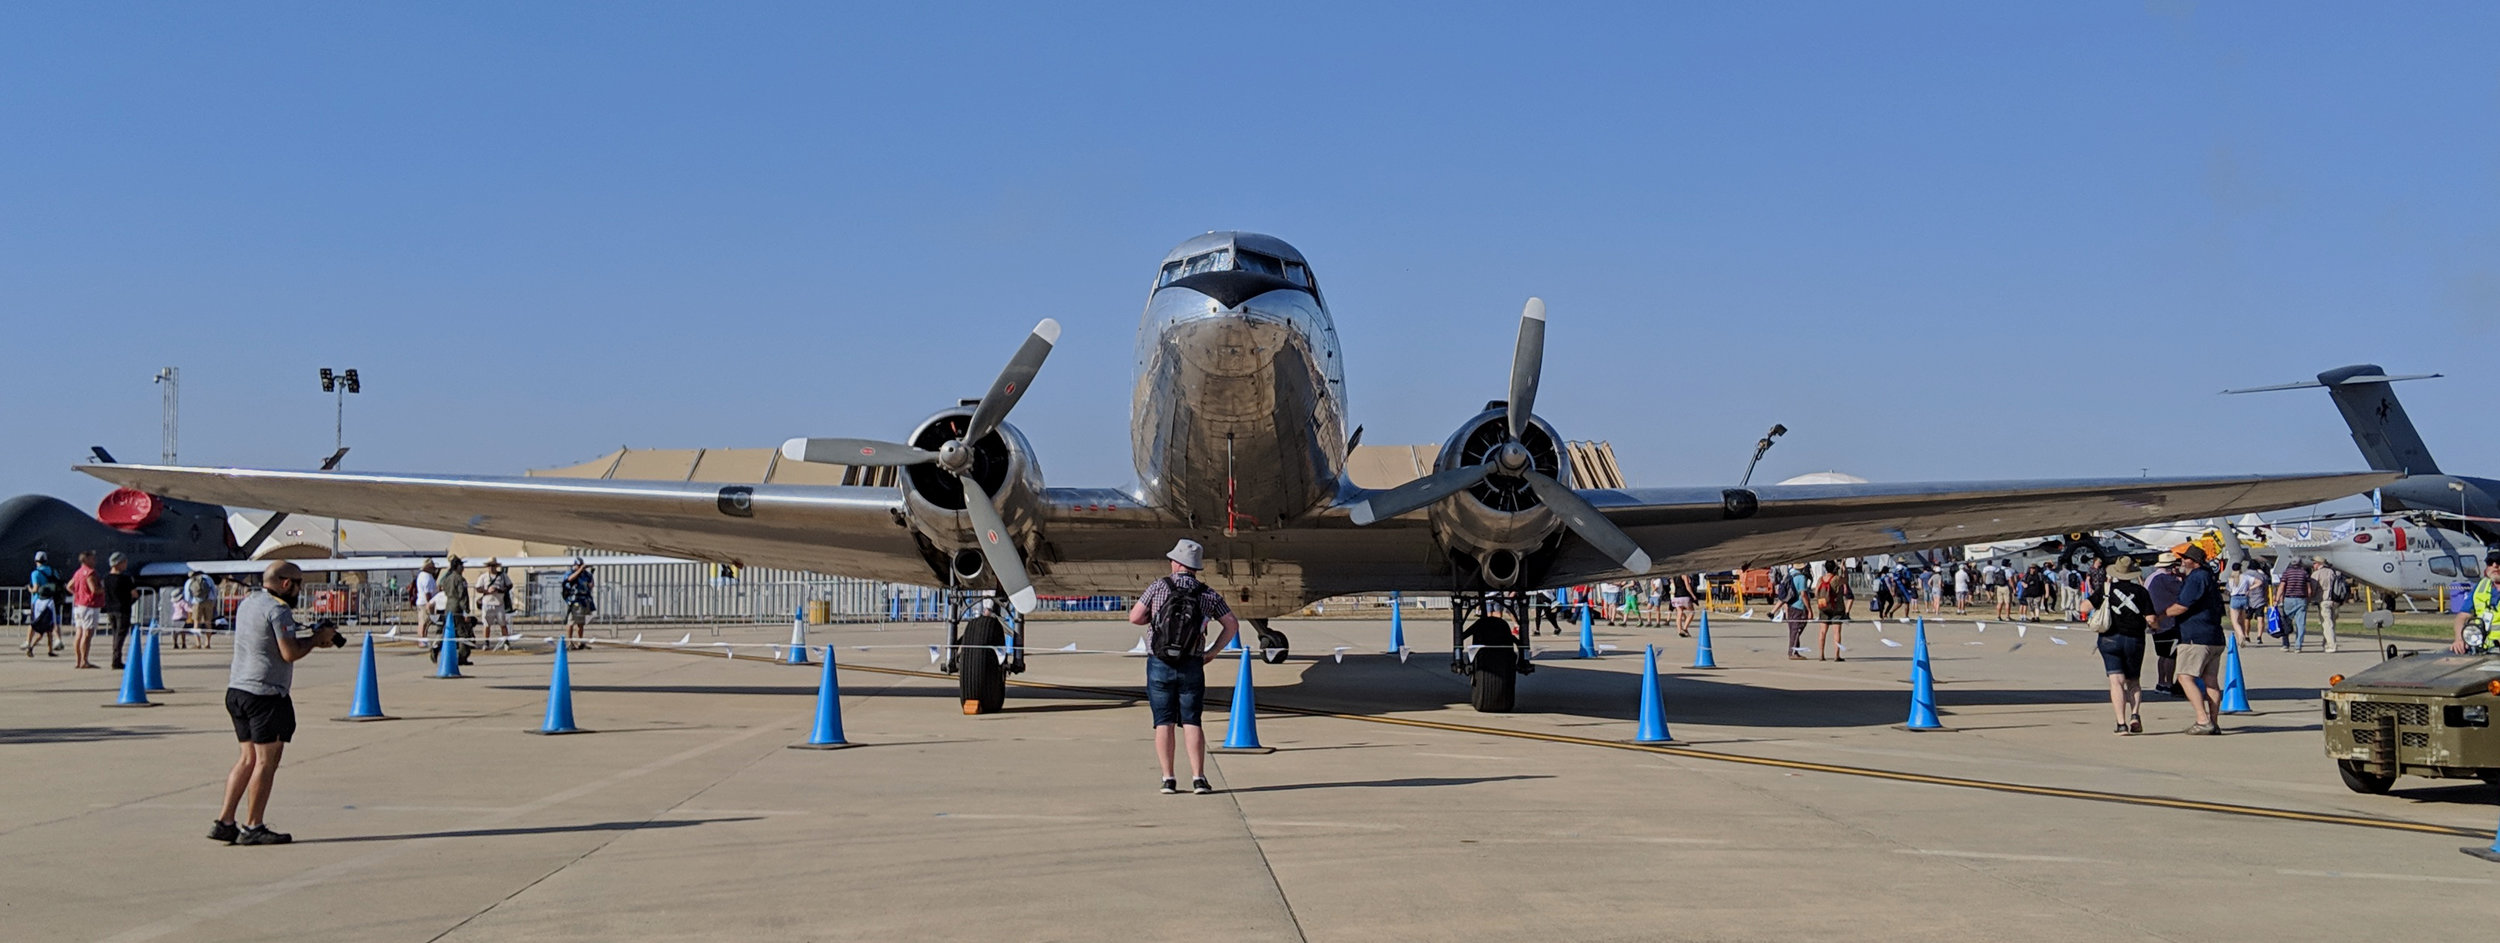 DC-3 Melbourne's Gooney Bird.jpg